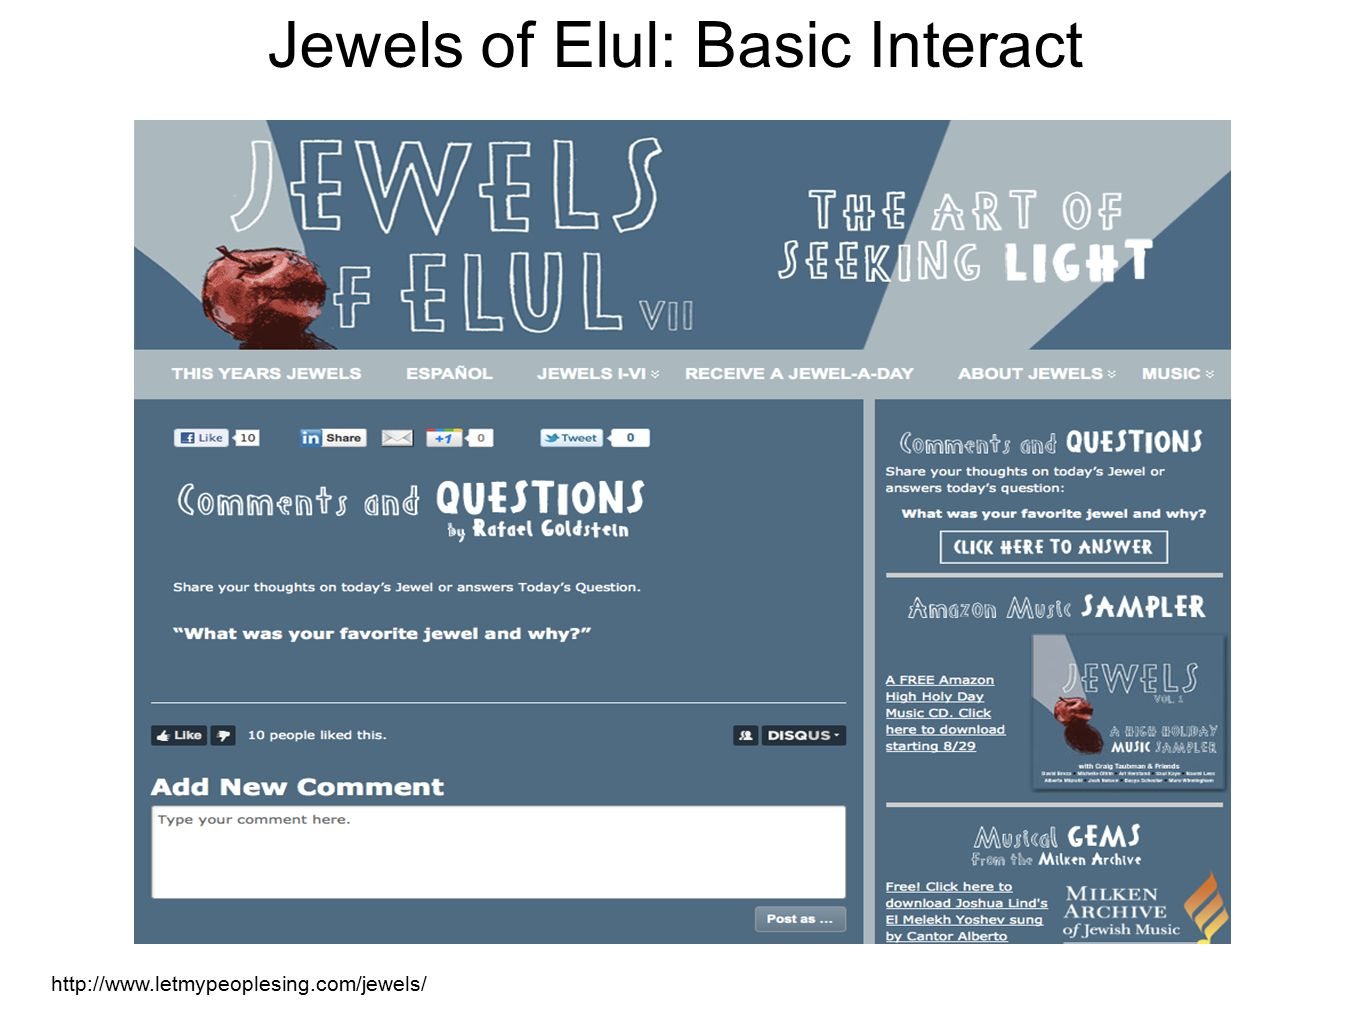 http://www.letmypeoplesing.com/jewels/ Jewels of Elul: Basic Interact